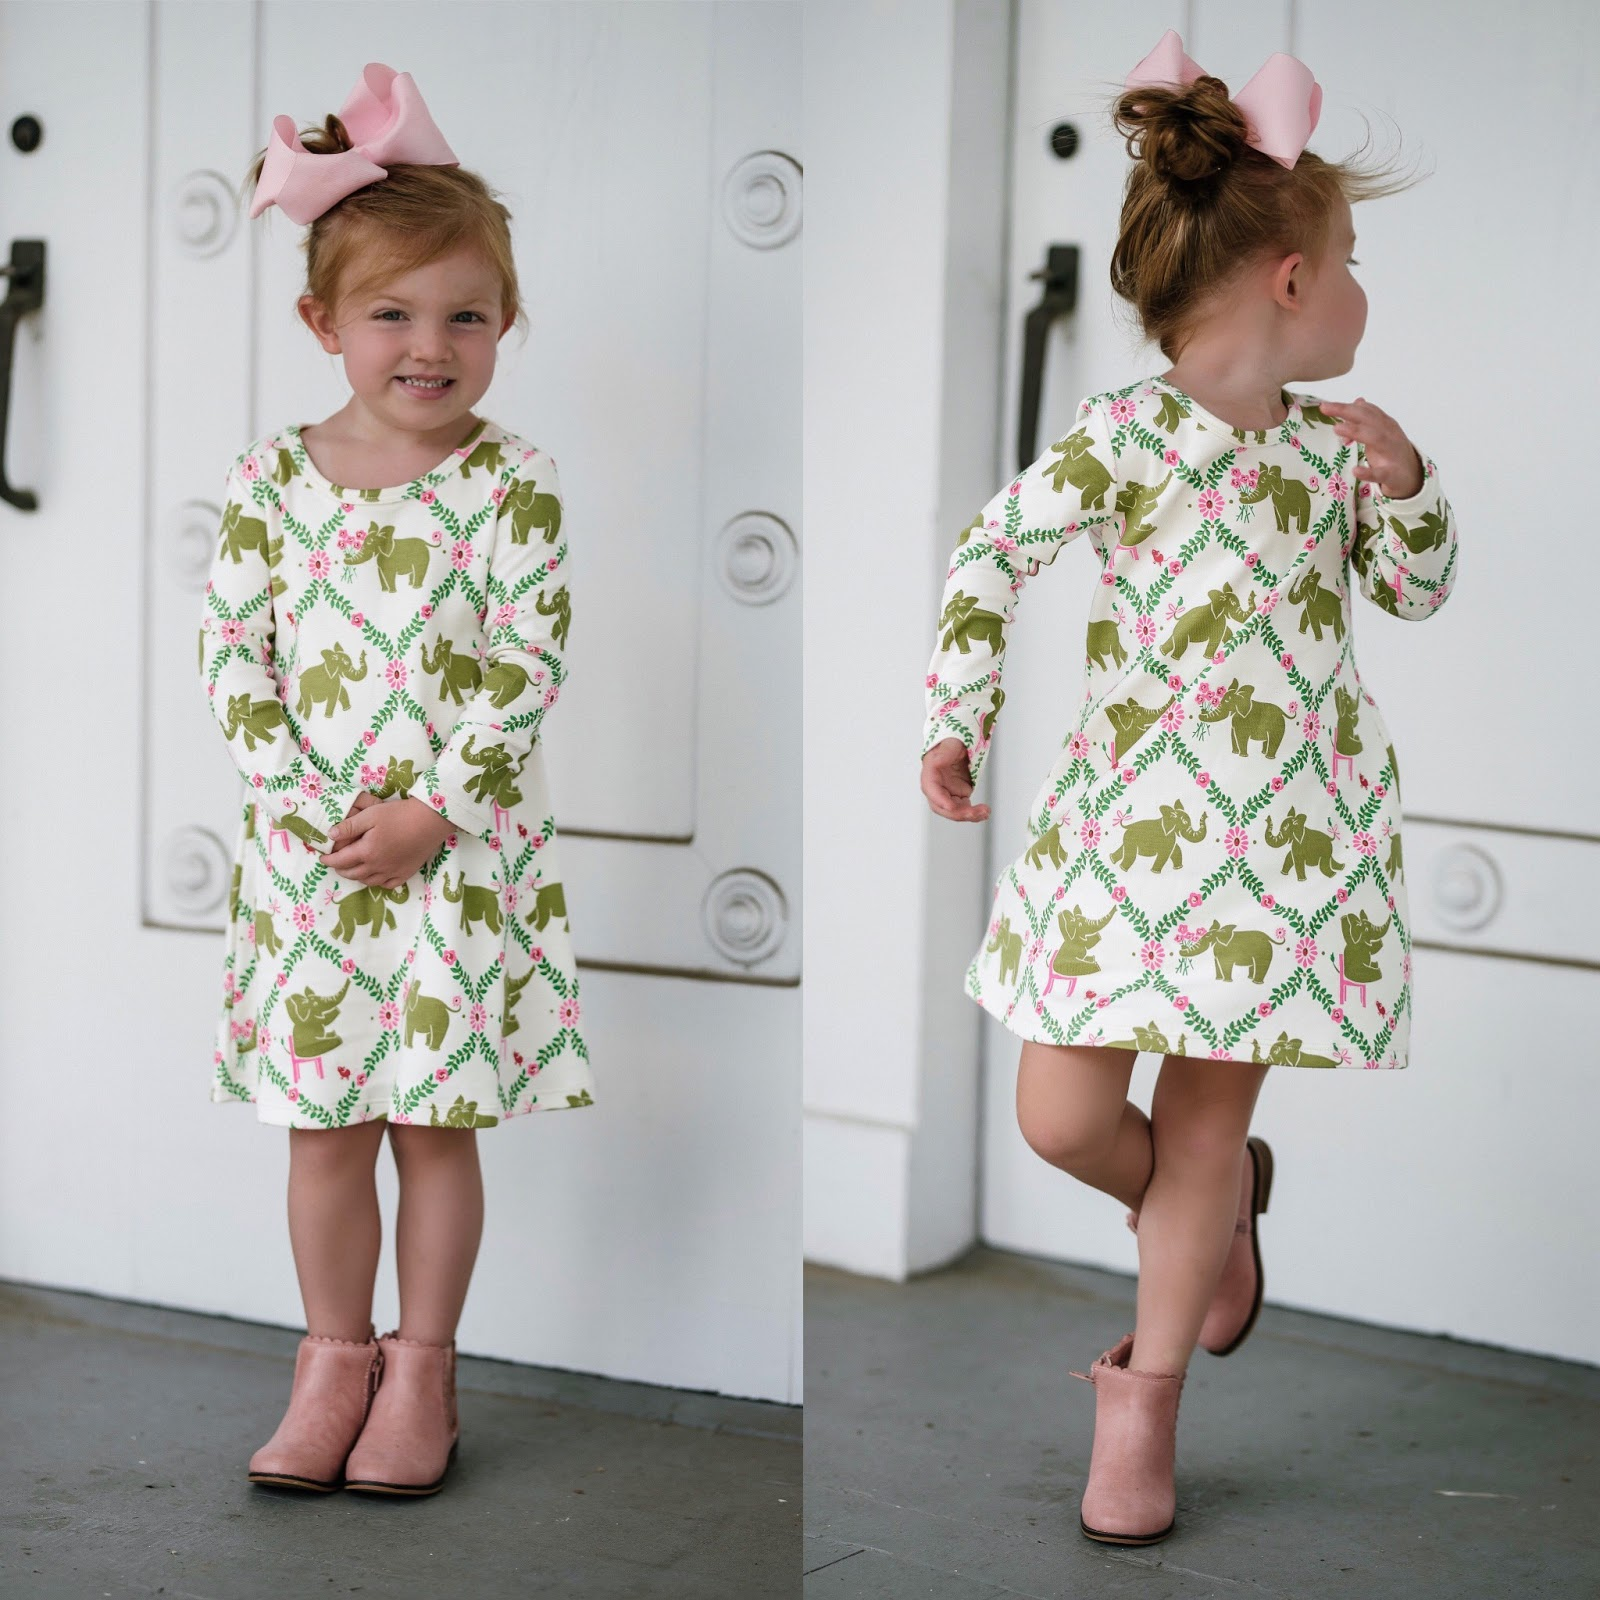 Kid's Style - The Beaufort Bonnet Company Pink & Green Dress - Something Delightful Blog